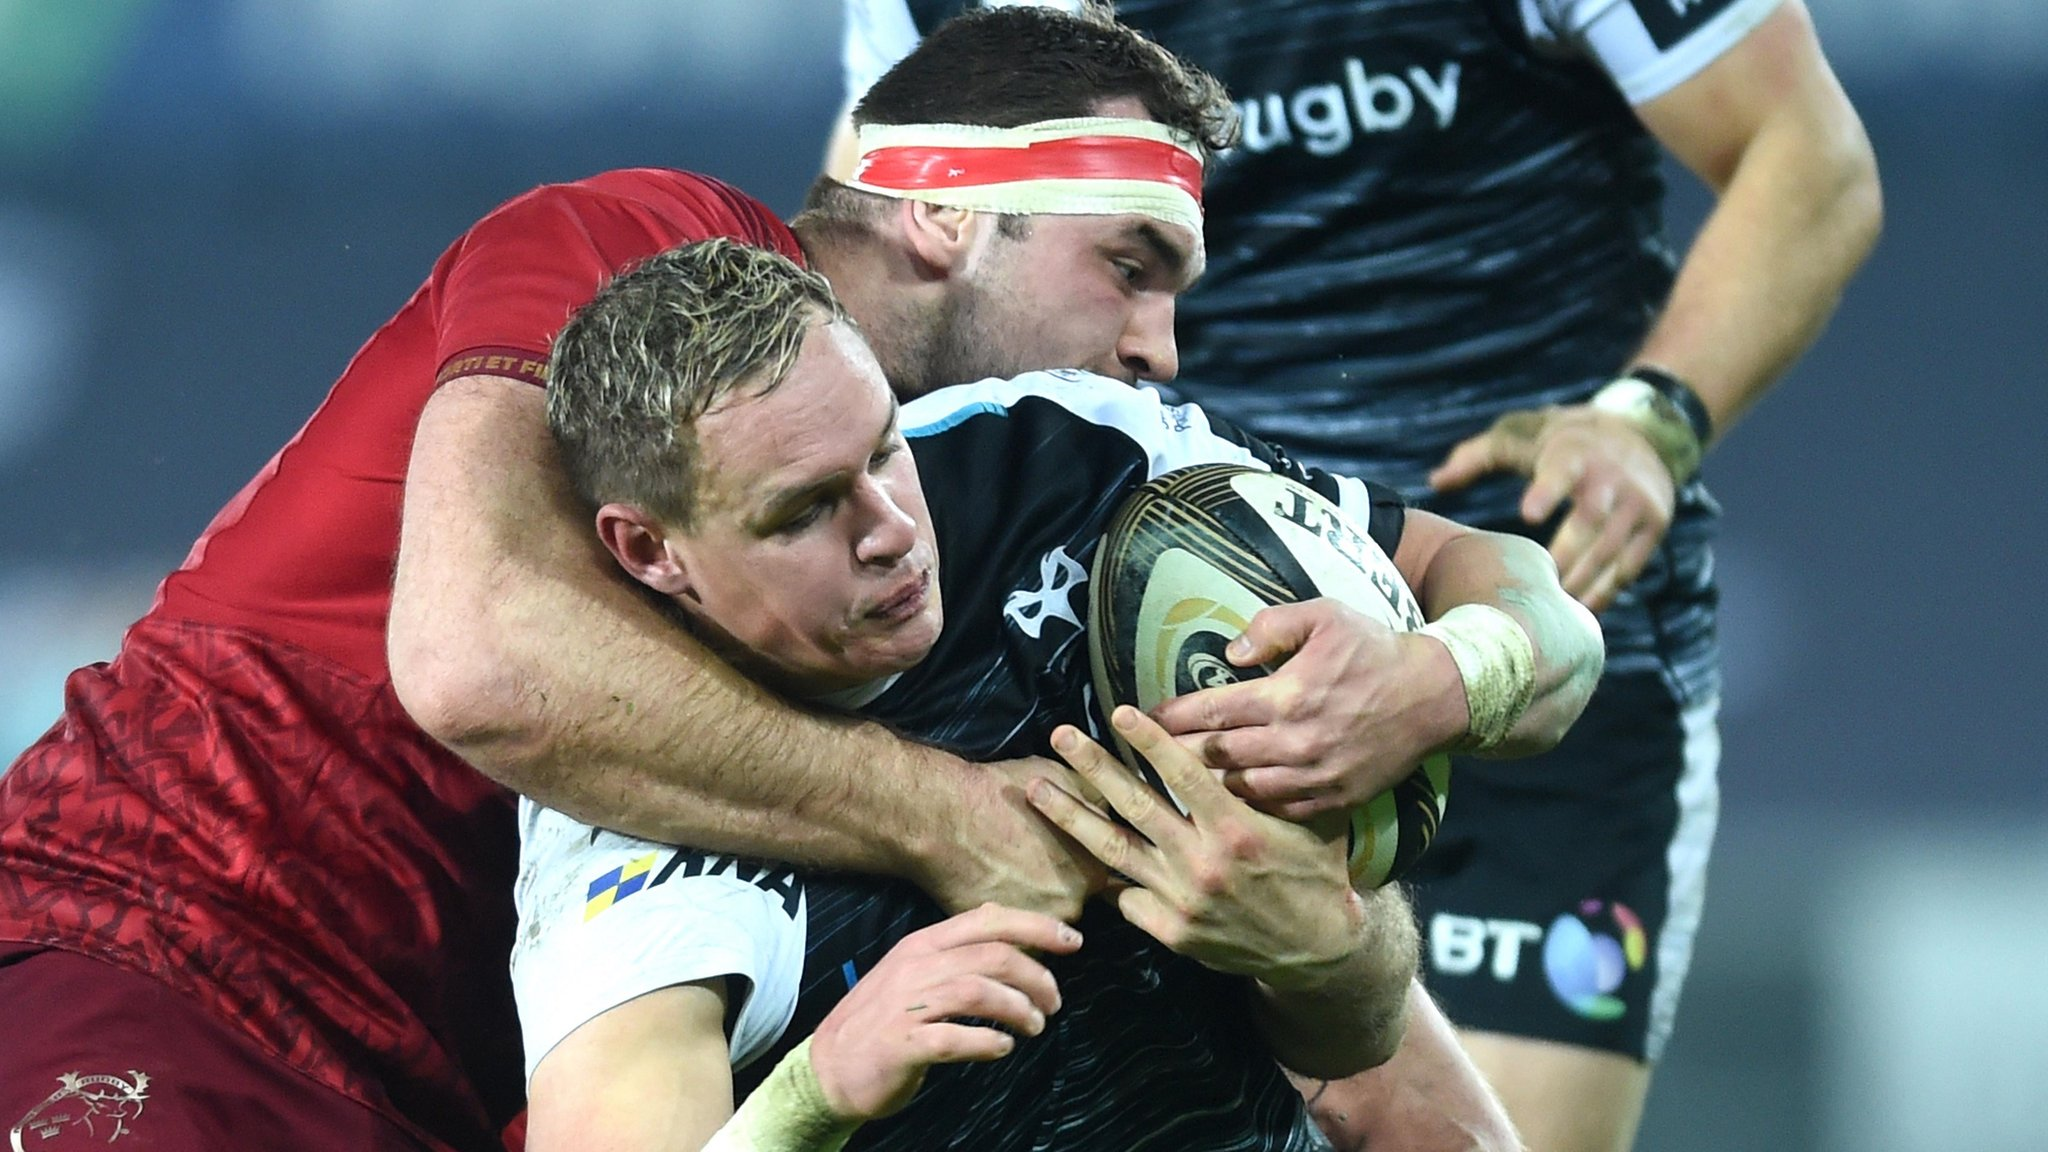 Pro14: Ospreys 13-19 Munster - Late Haley try seals win for visitors